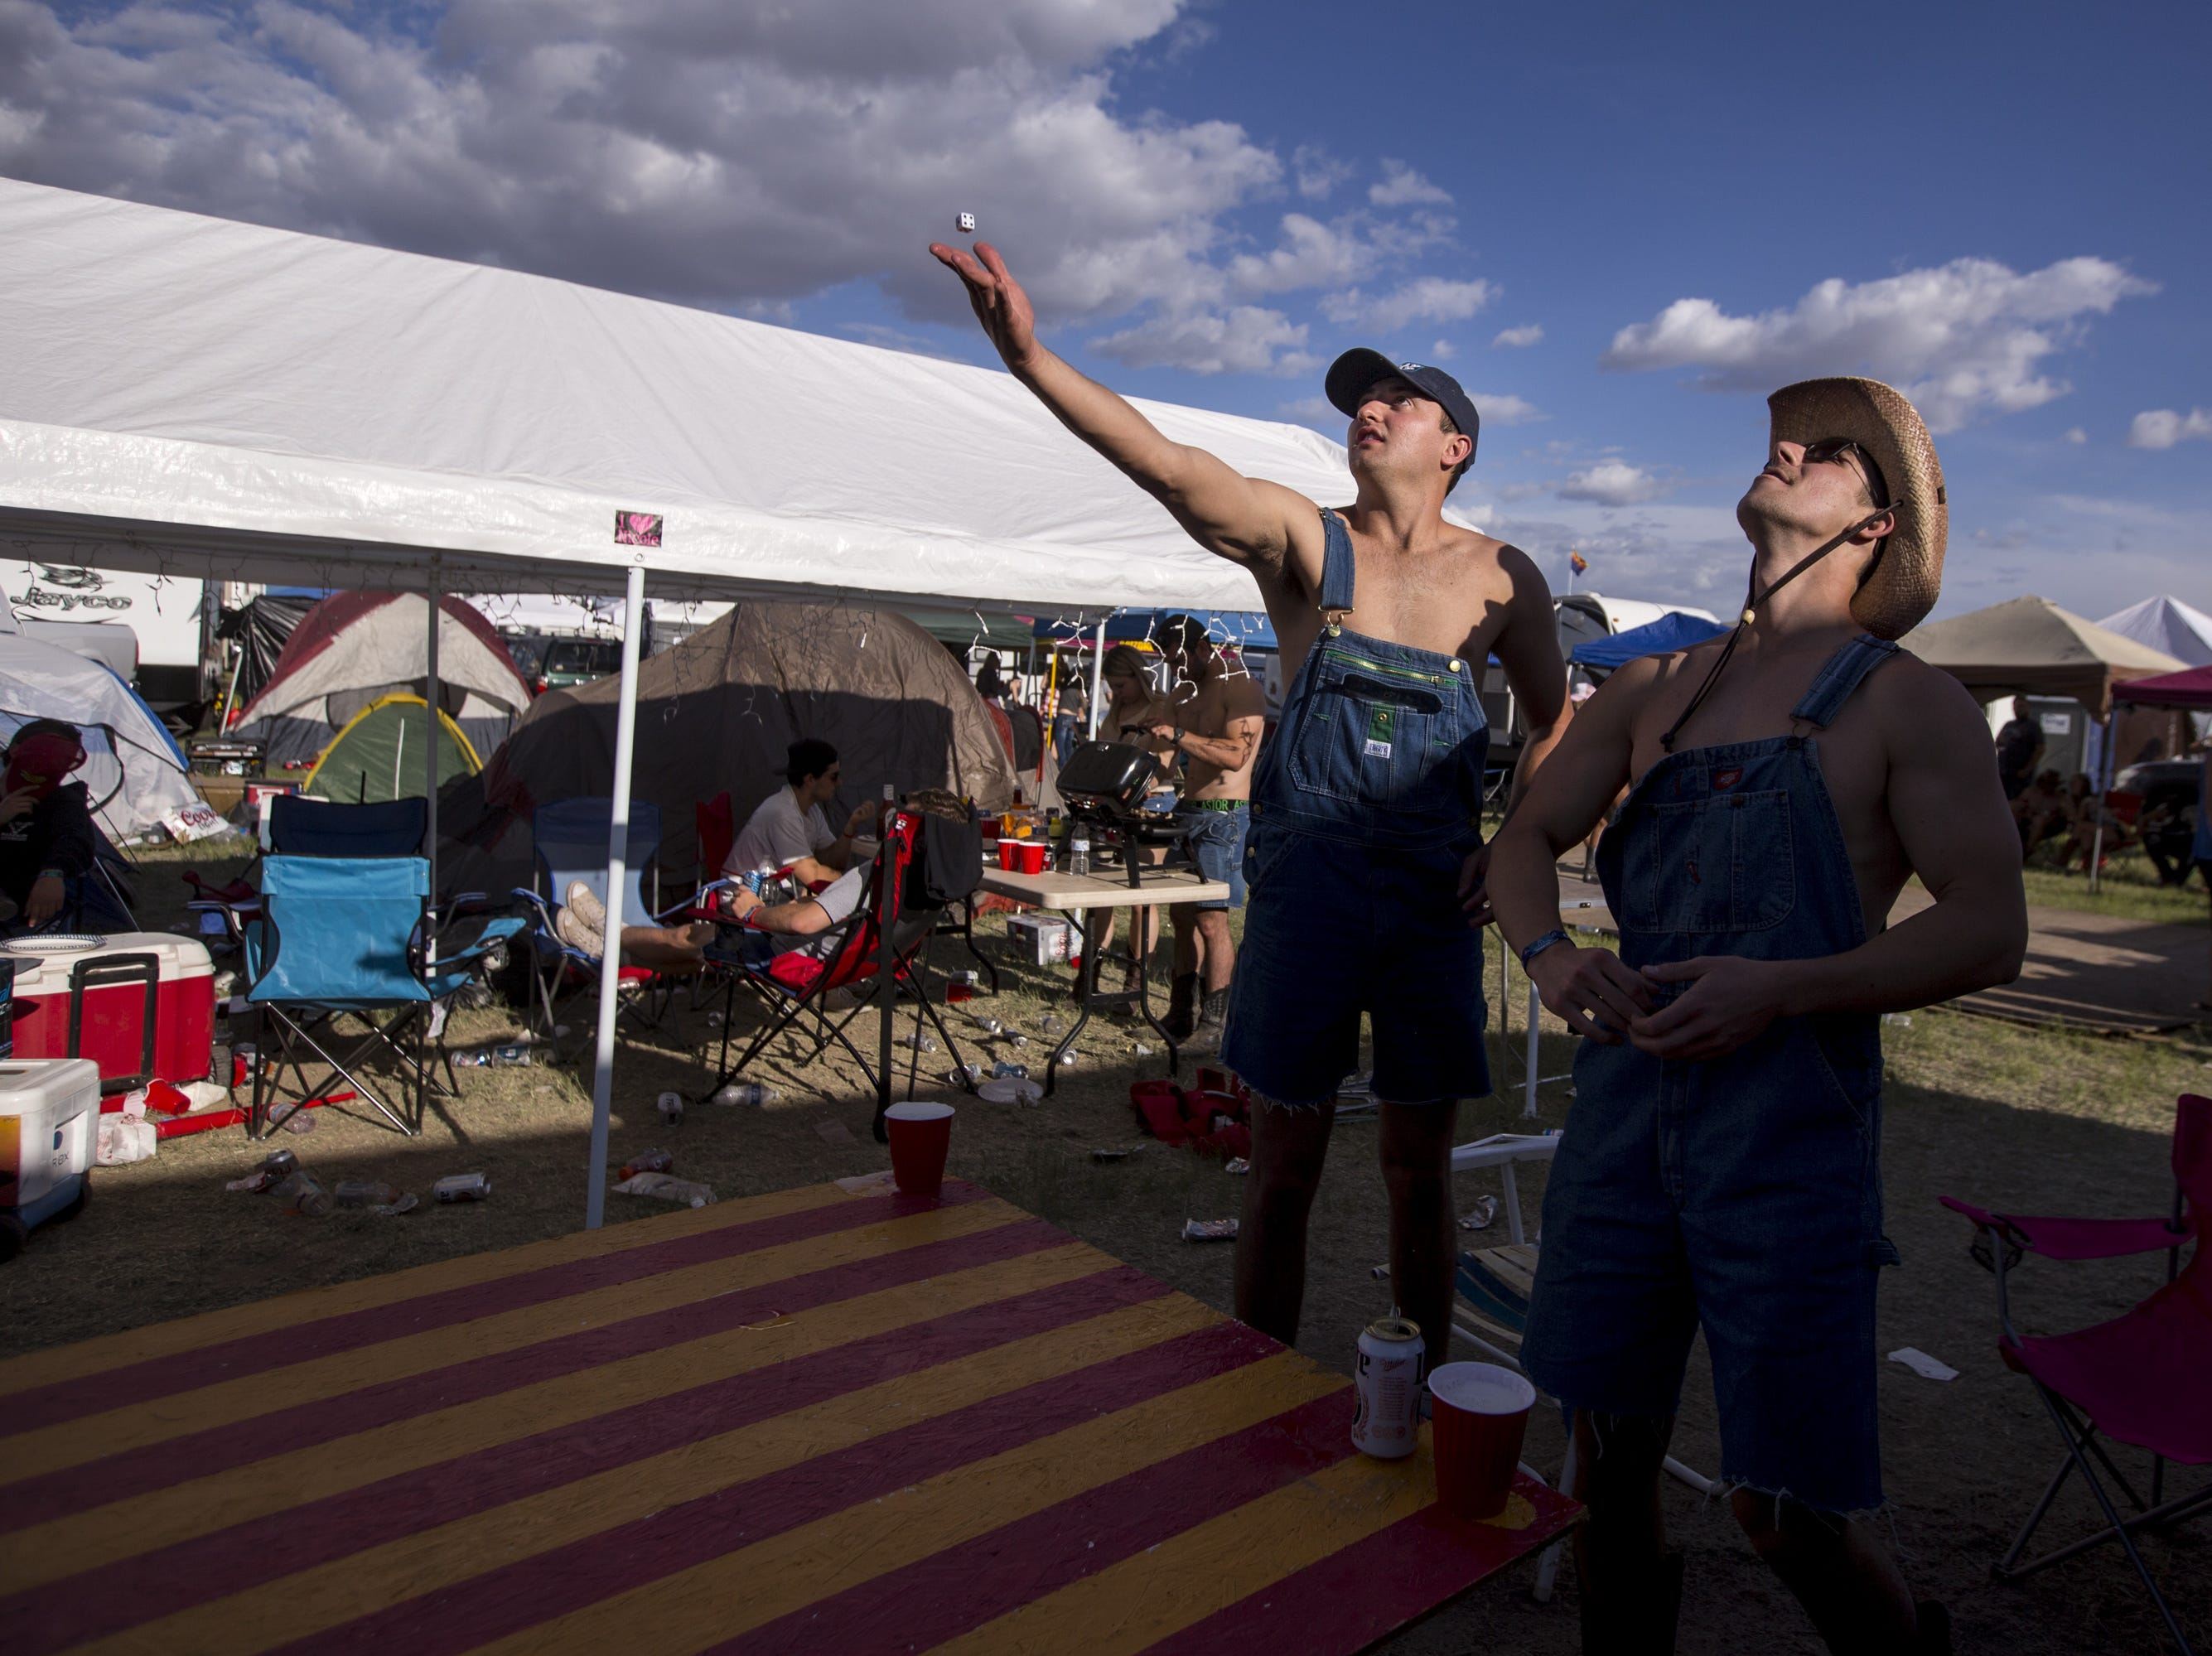 Joey Padish (left) and Zach Ondrejka play beer die on Friday, April 12, 2019, during Day 2 of Country Thunder Arizona in Florence, Ariz.